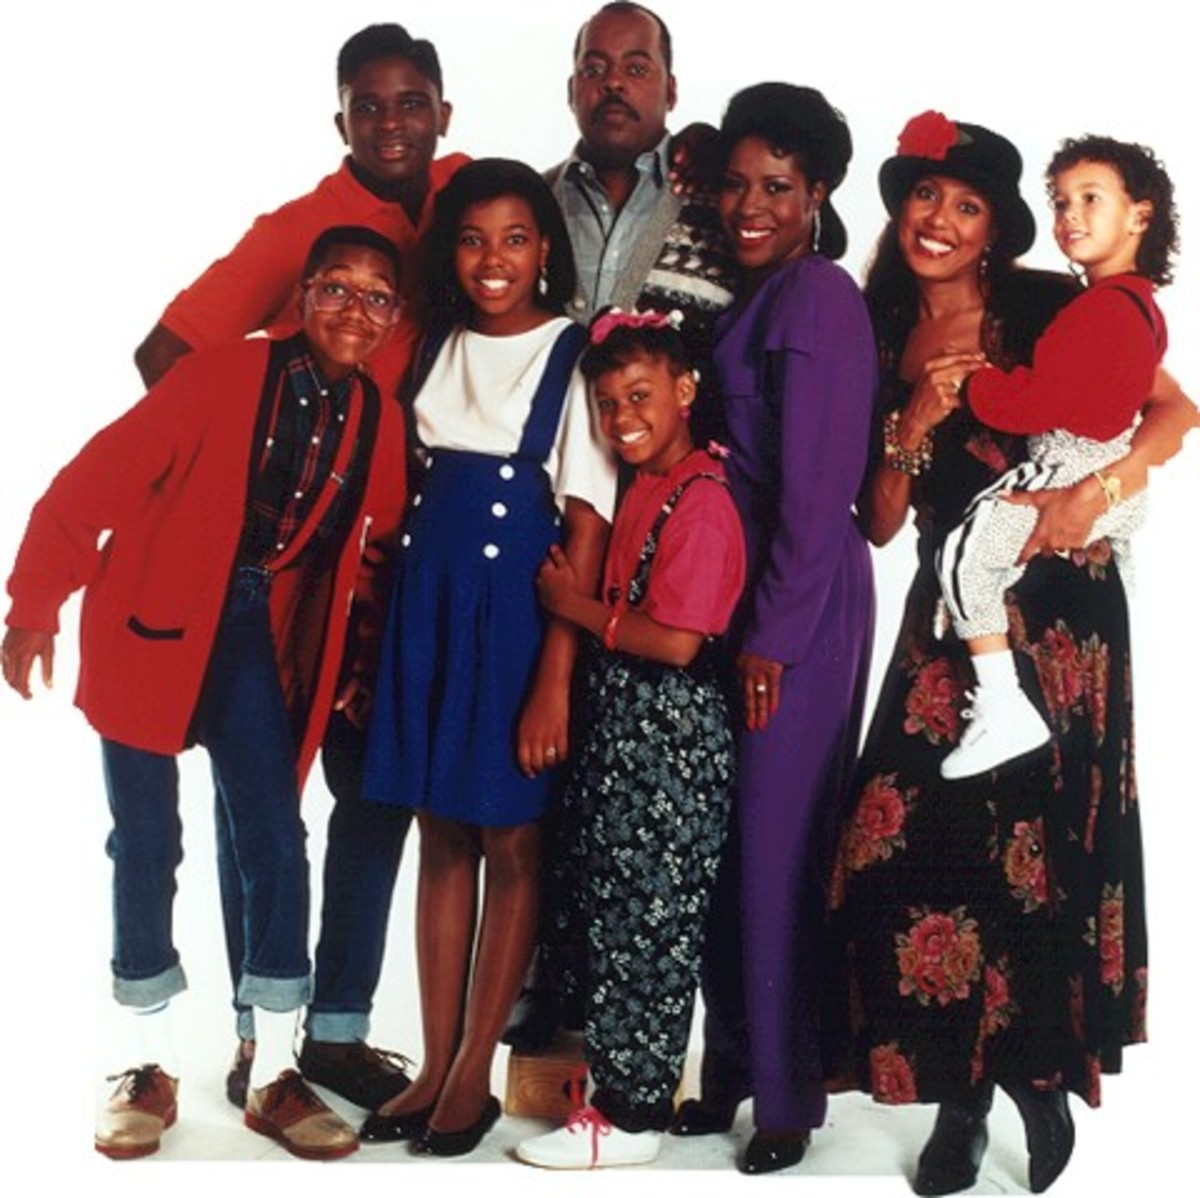 A photo of the Family Matters cast together